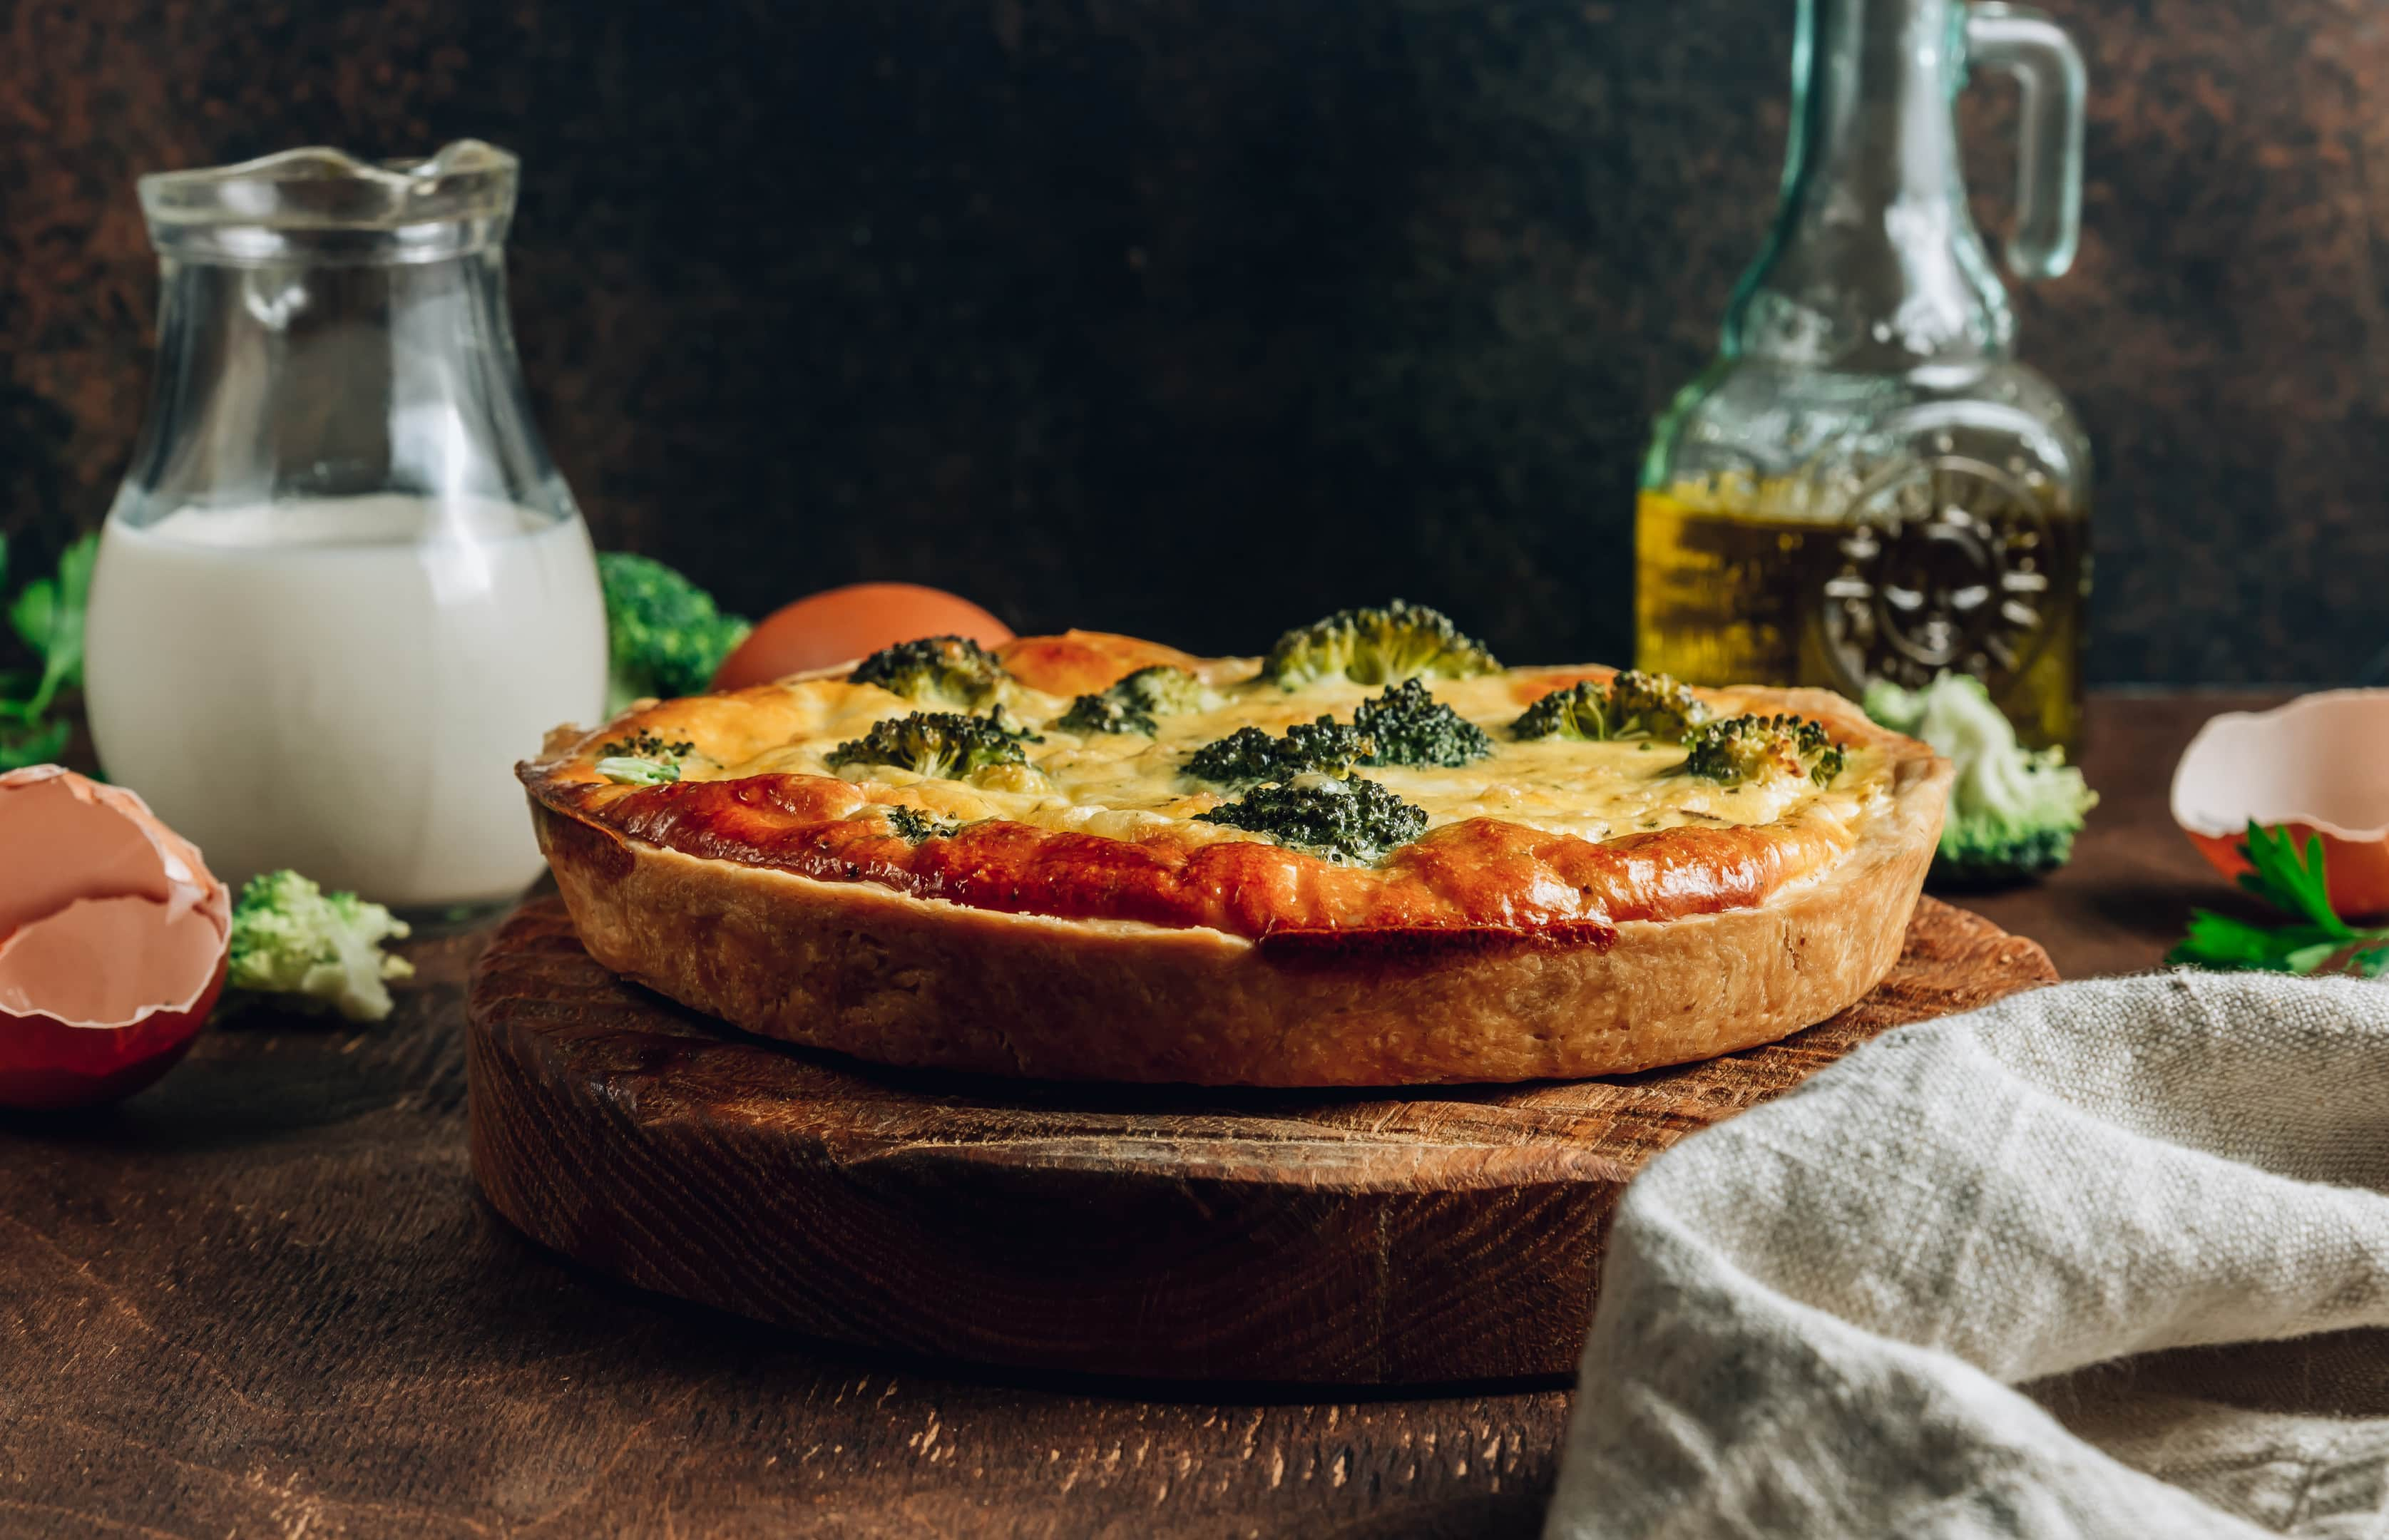 Traditional vegetable quiche with broccoli on wooden board